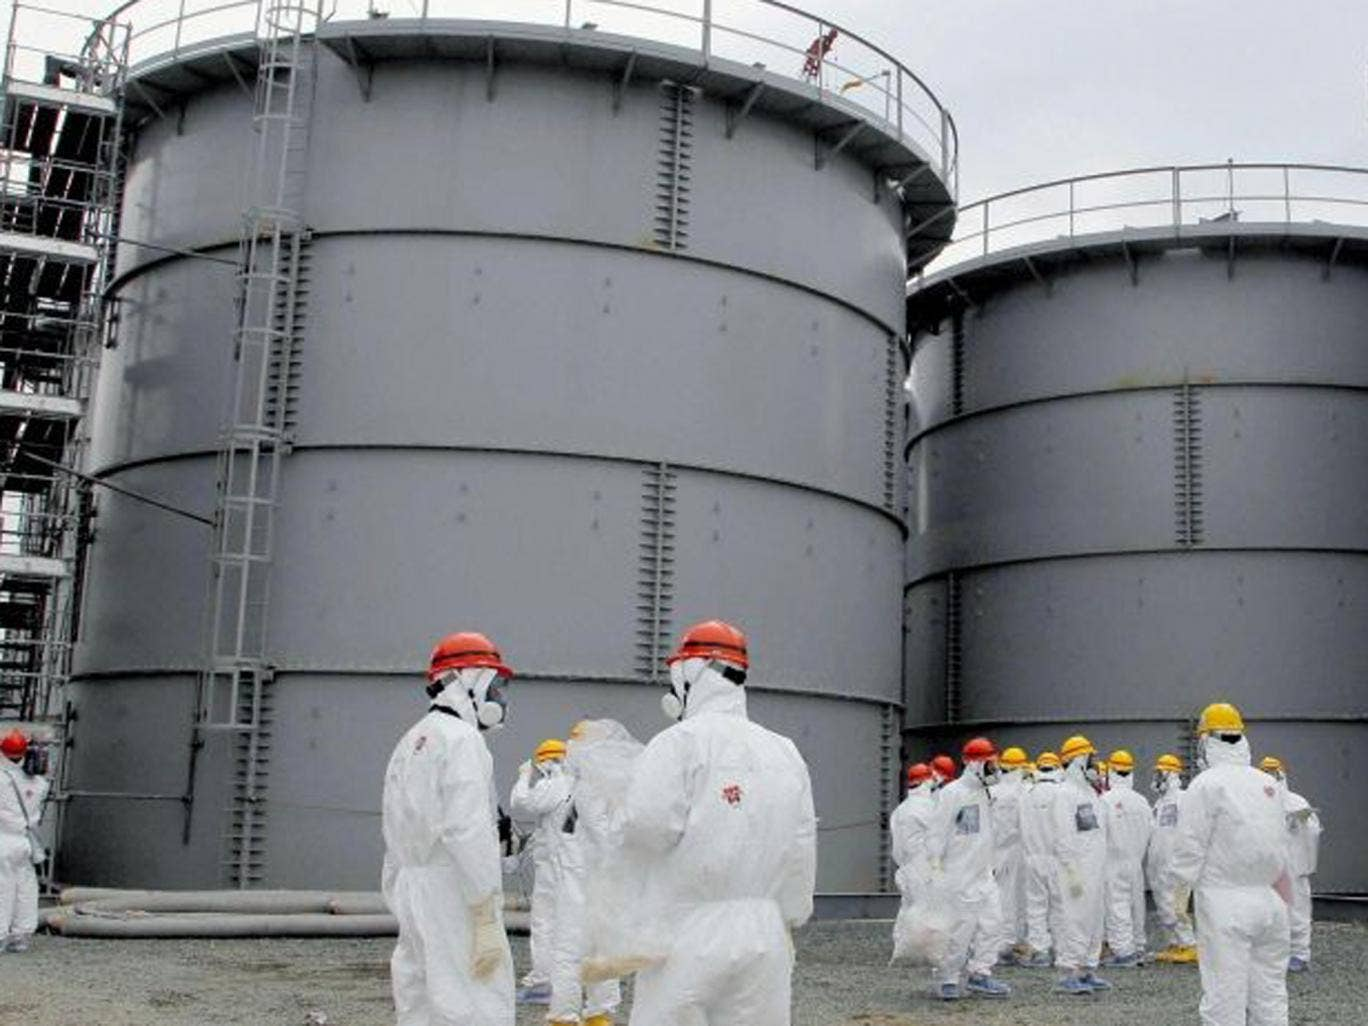 The decision to raise threat level at nuclear plant is seen as another sign that engineers are losing control over the leaks